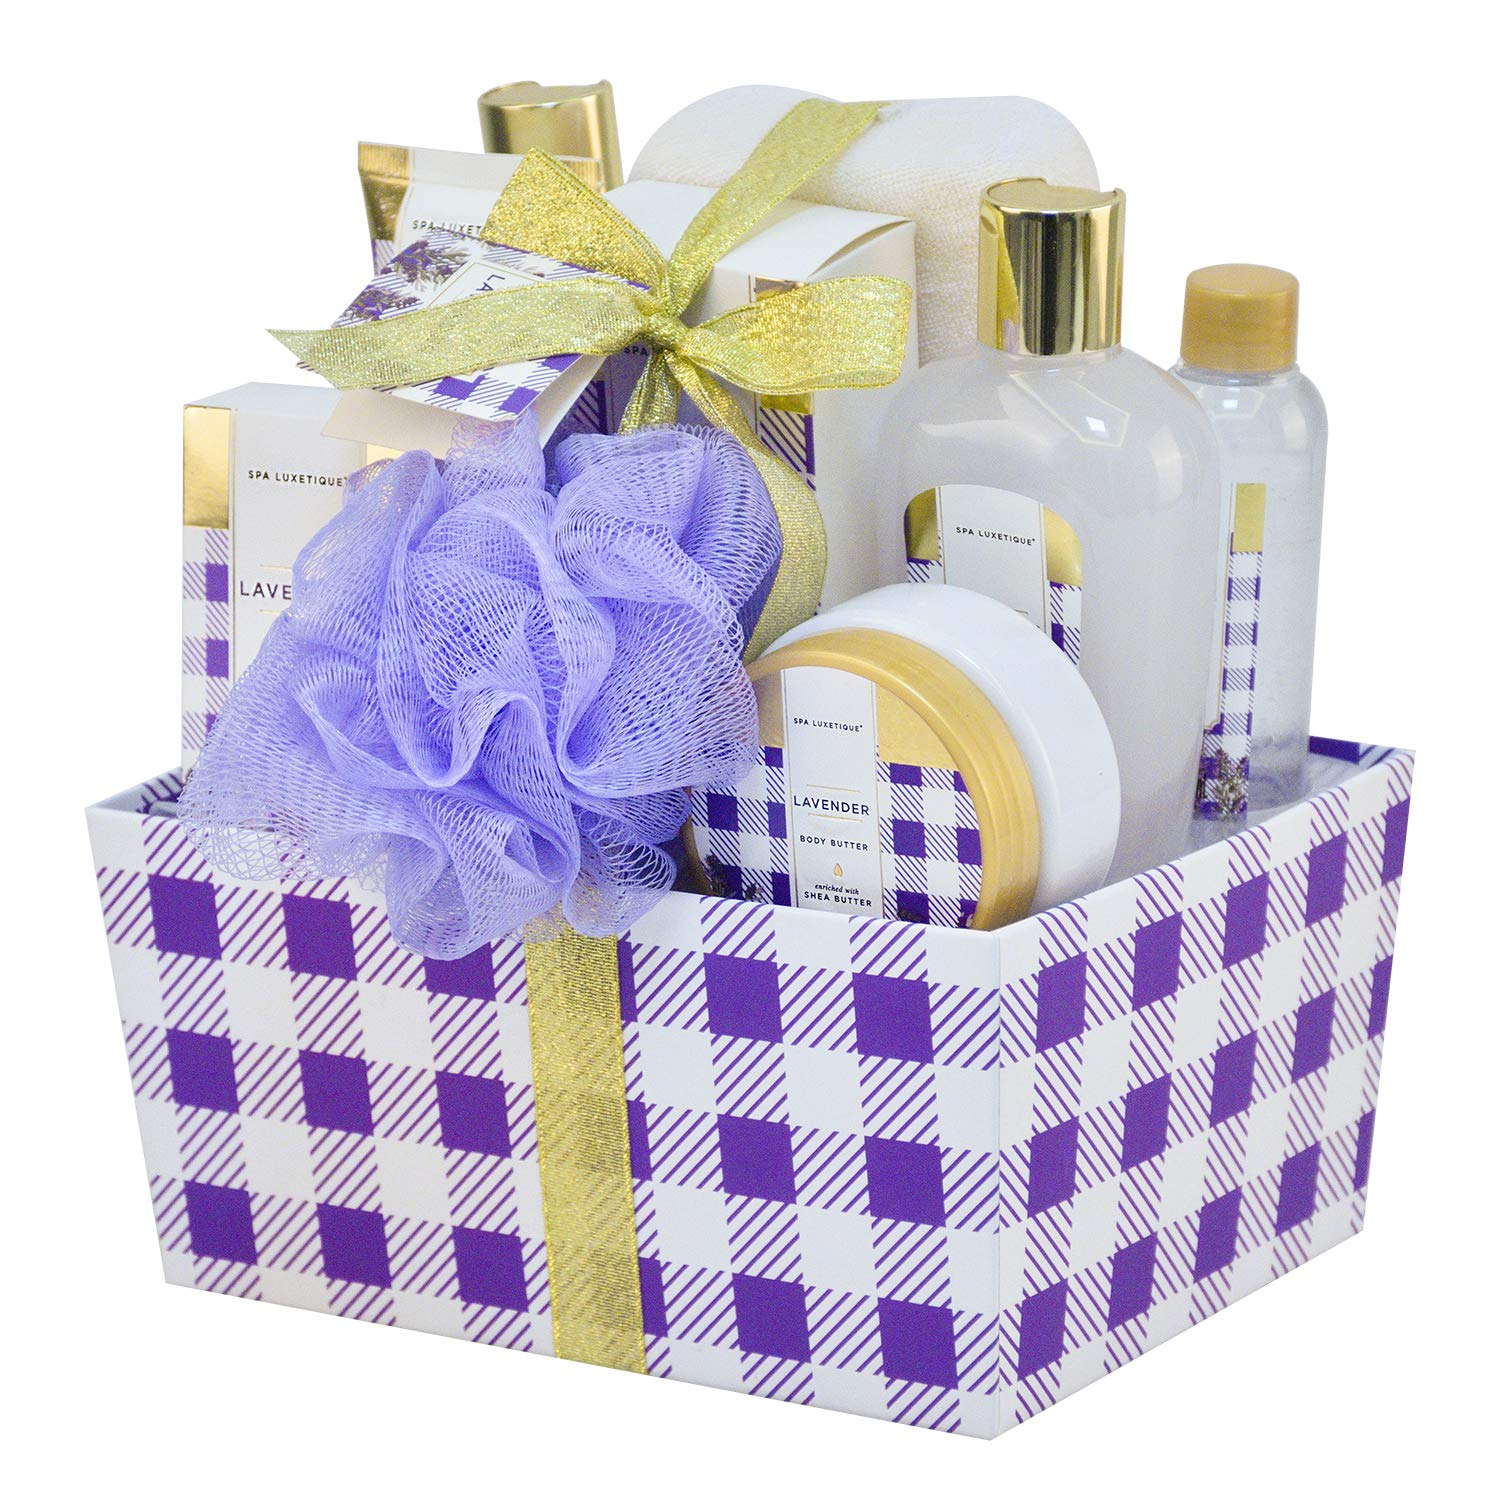 Spa Luxetique Bath Spa Gift Basket Lavender Fragrance, Premium 10pc Gift Baskets for Women, Home Spa Gift Set with Soap, Body Butter, Hand Soap, Bath Puff, Body Lotion, Best Gift Set for Women. by spa luxetique